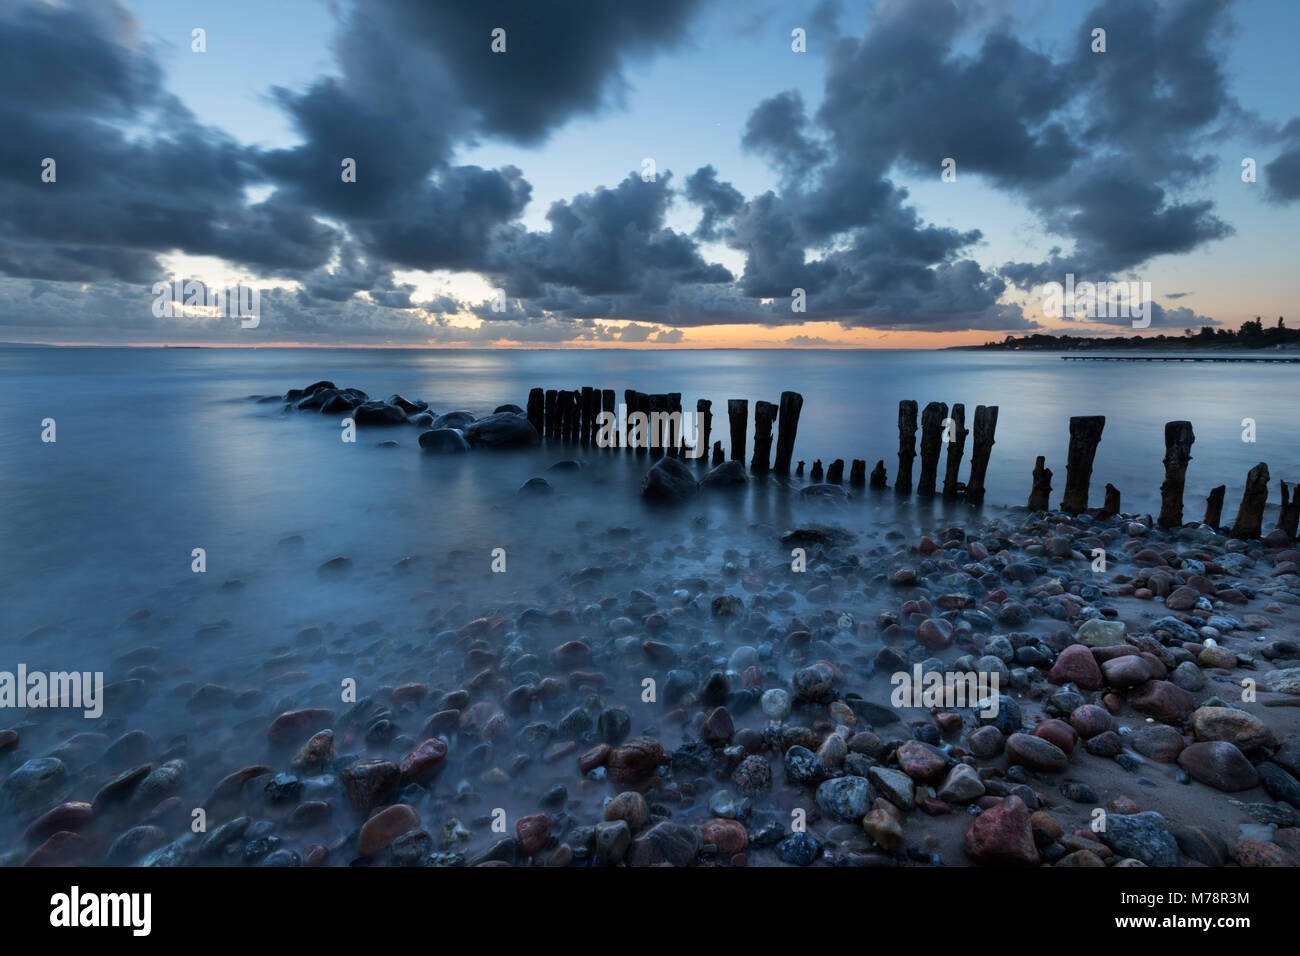 Old wooden piles going out to sea and pebbles on beach at dawn, Munkerup, Kattegat Coast, Zealand, Denmark, Scandinavia, - Stock Image